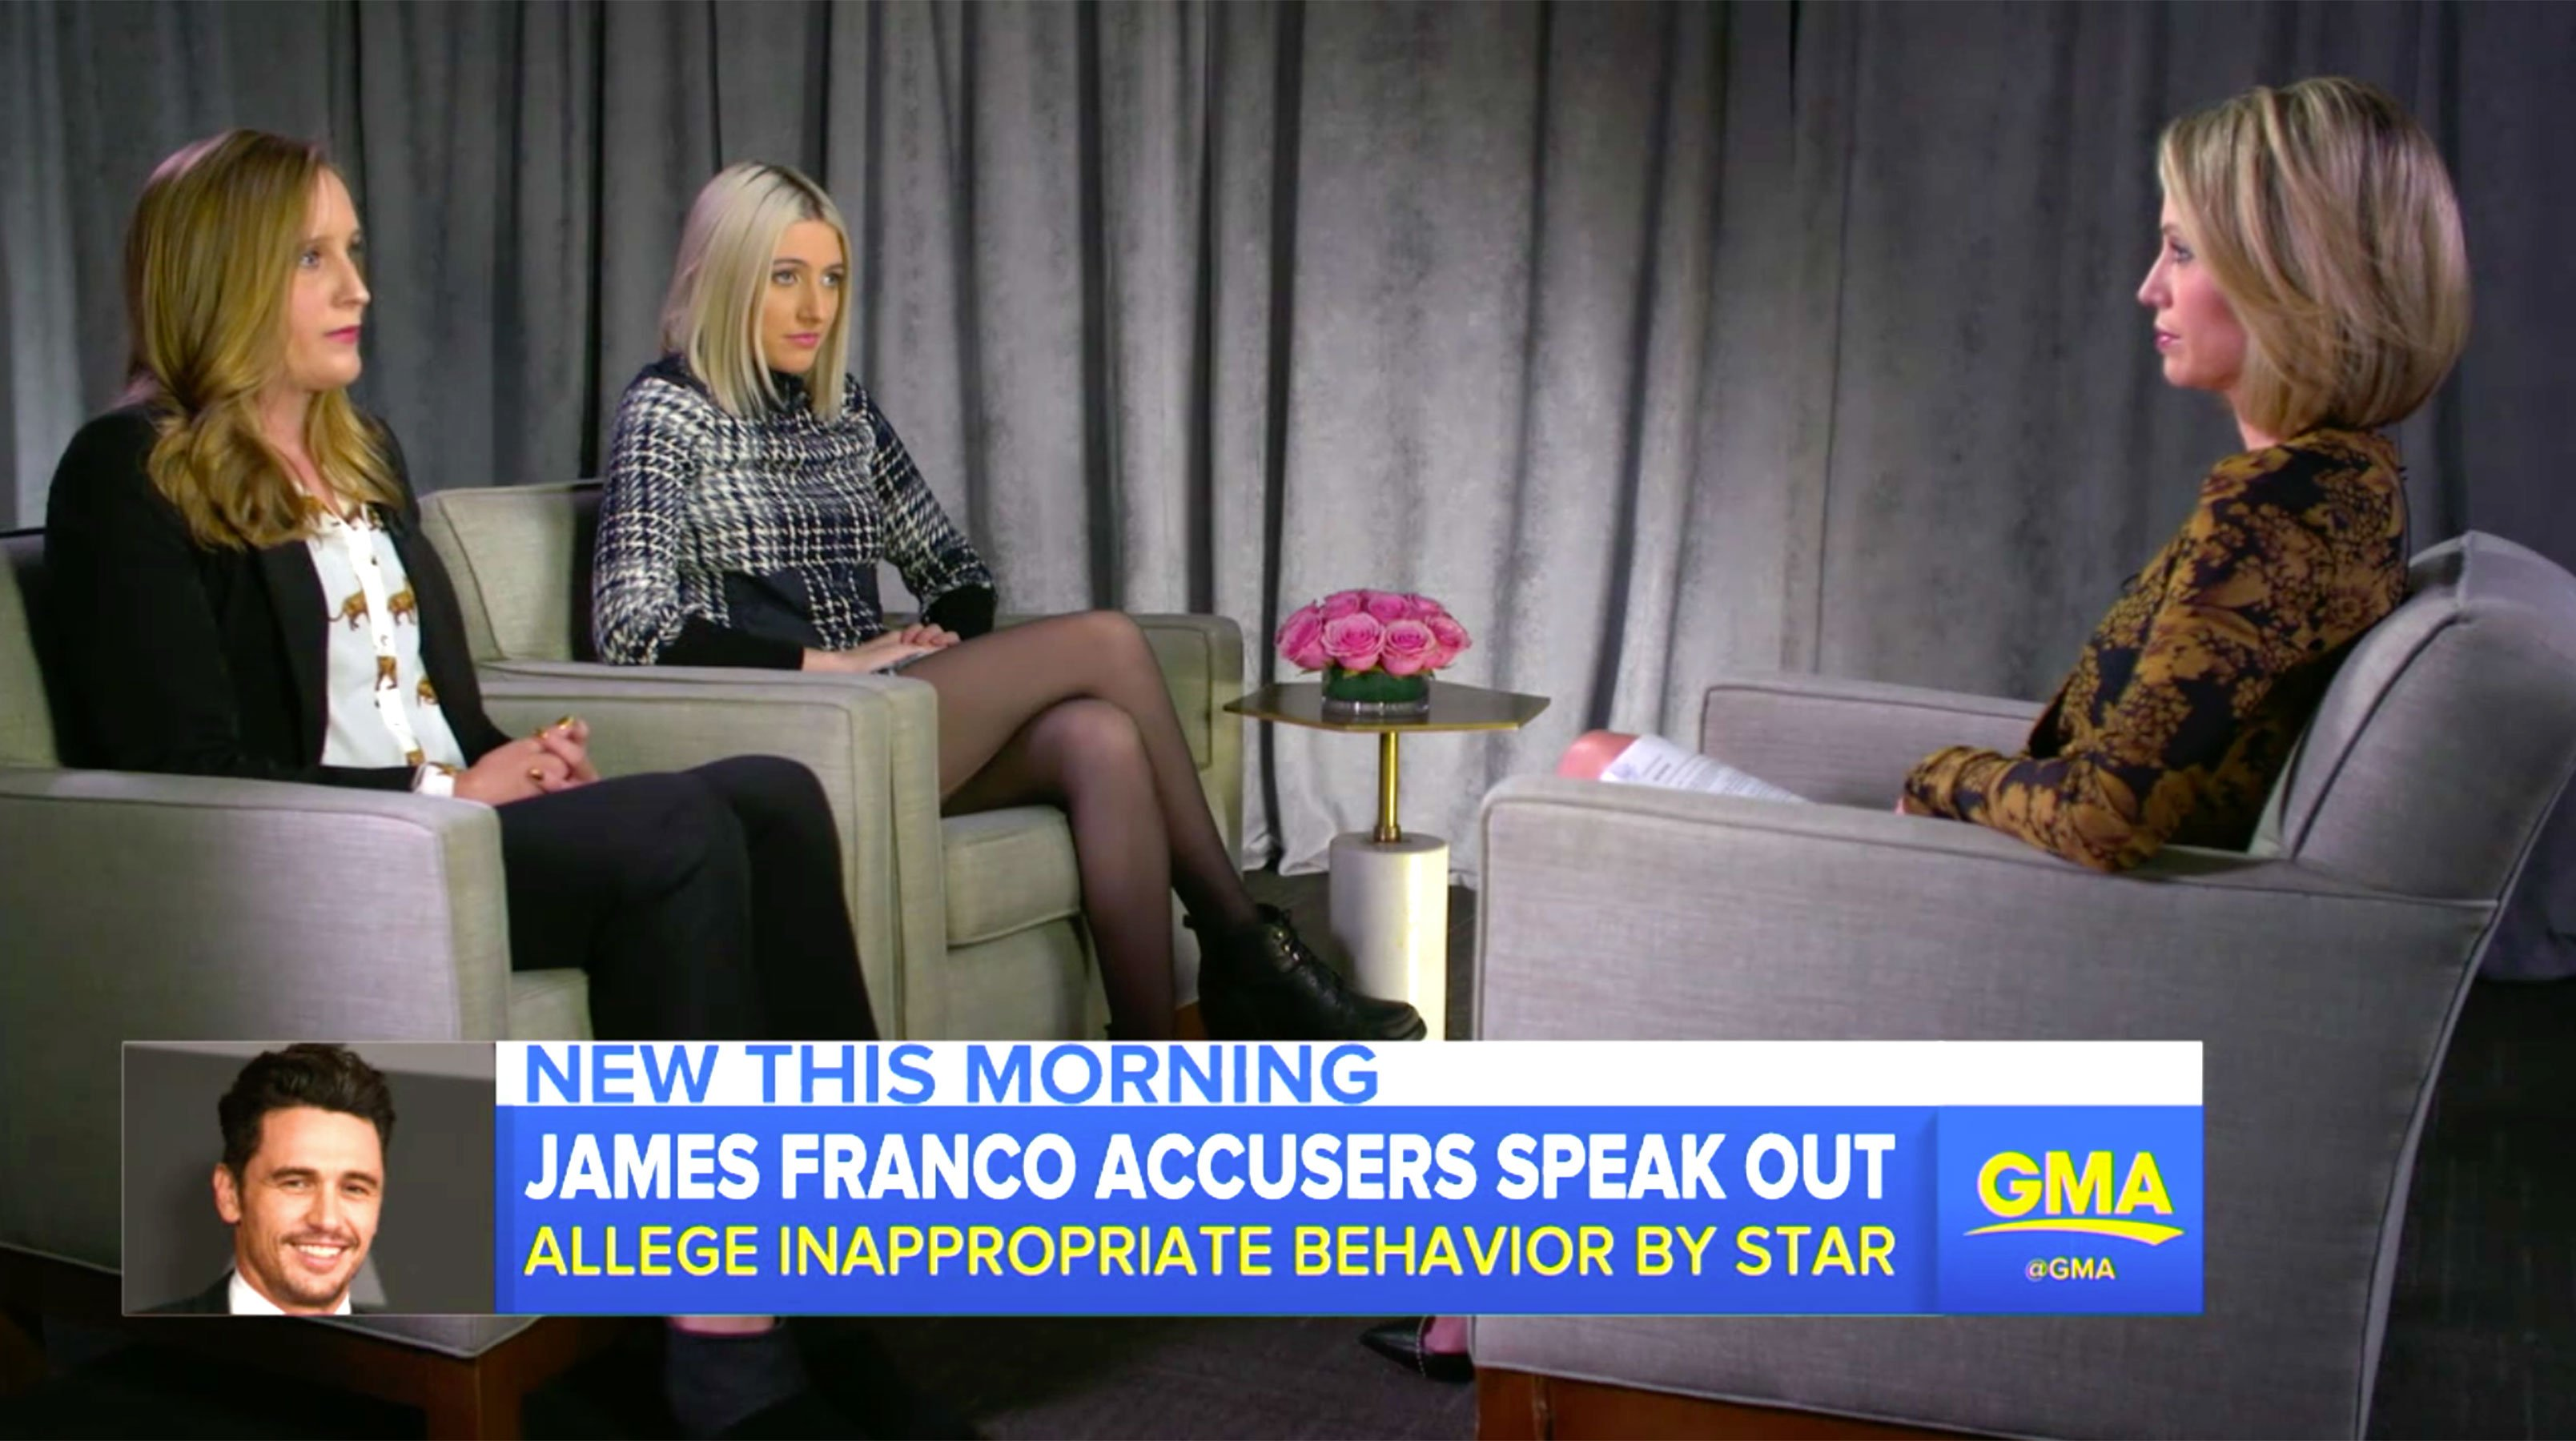 James Franco accusers call for actor to 'apologize'